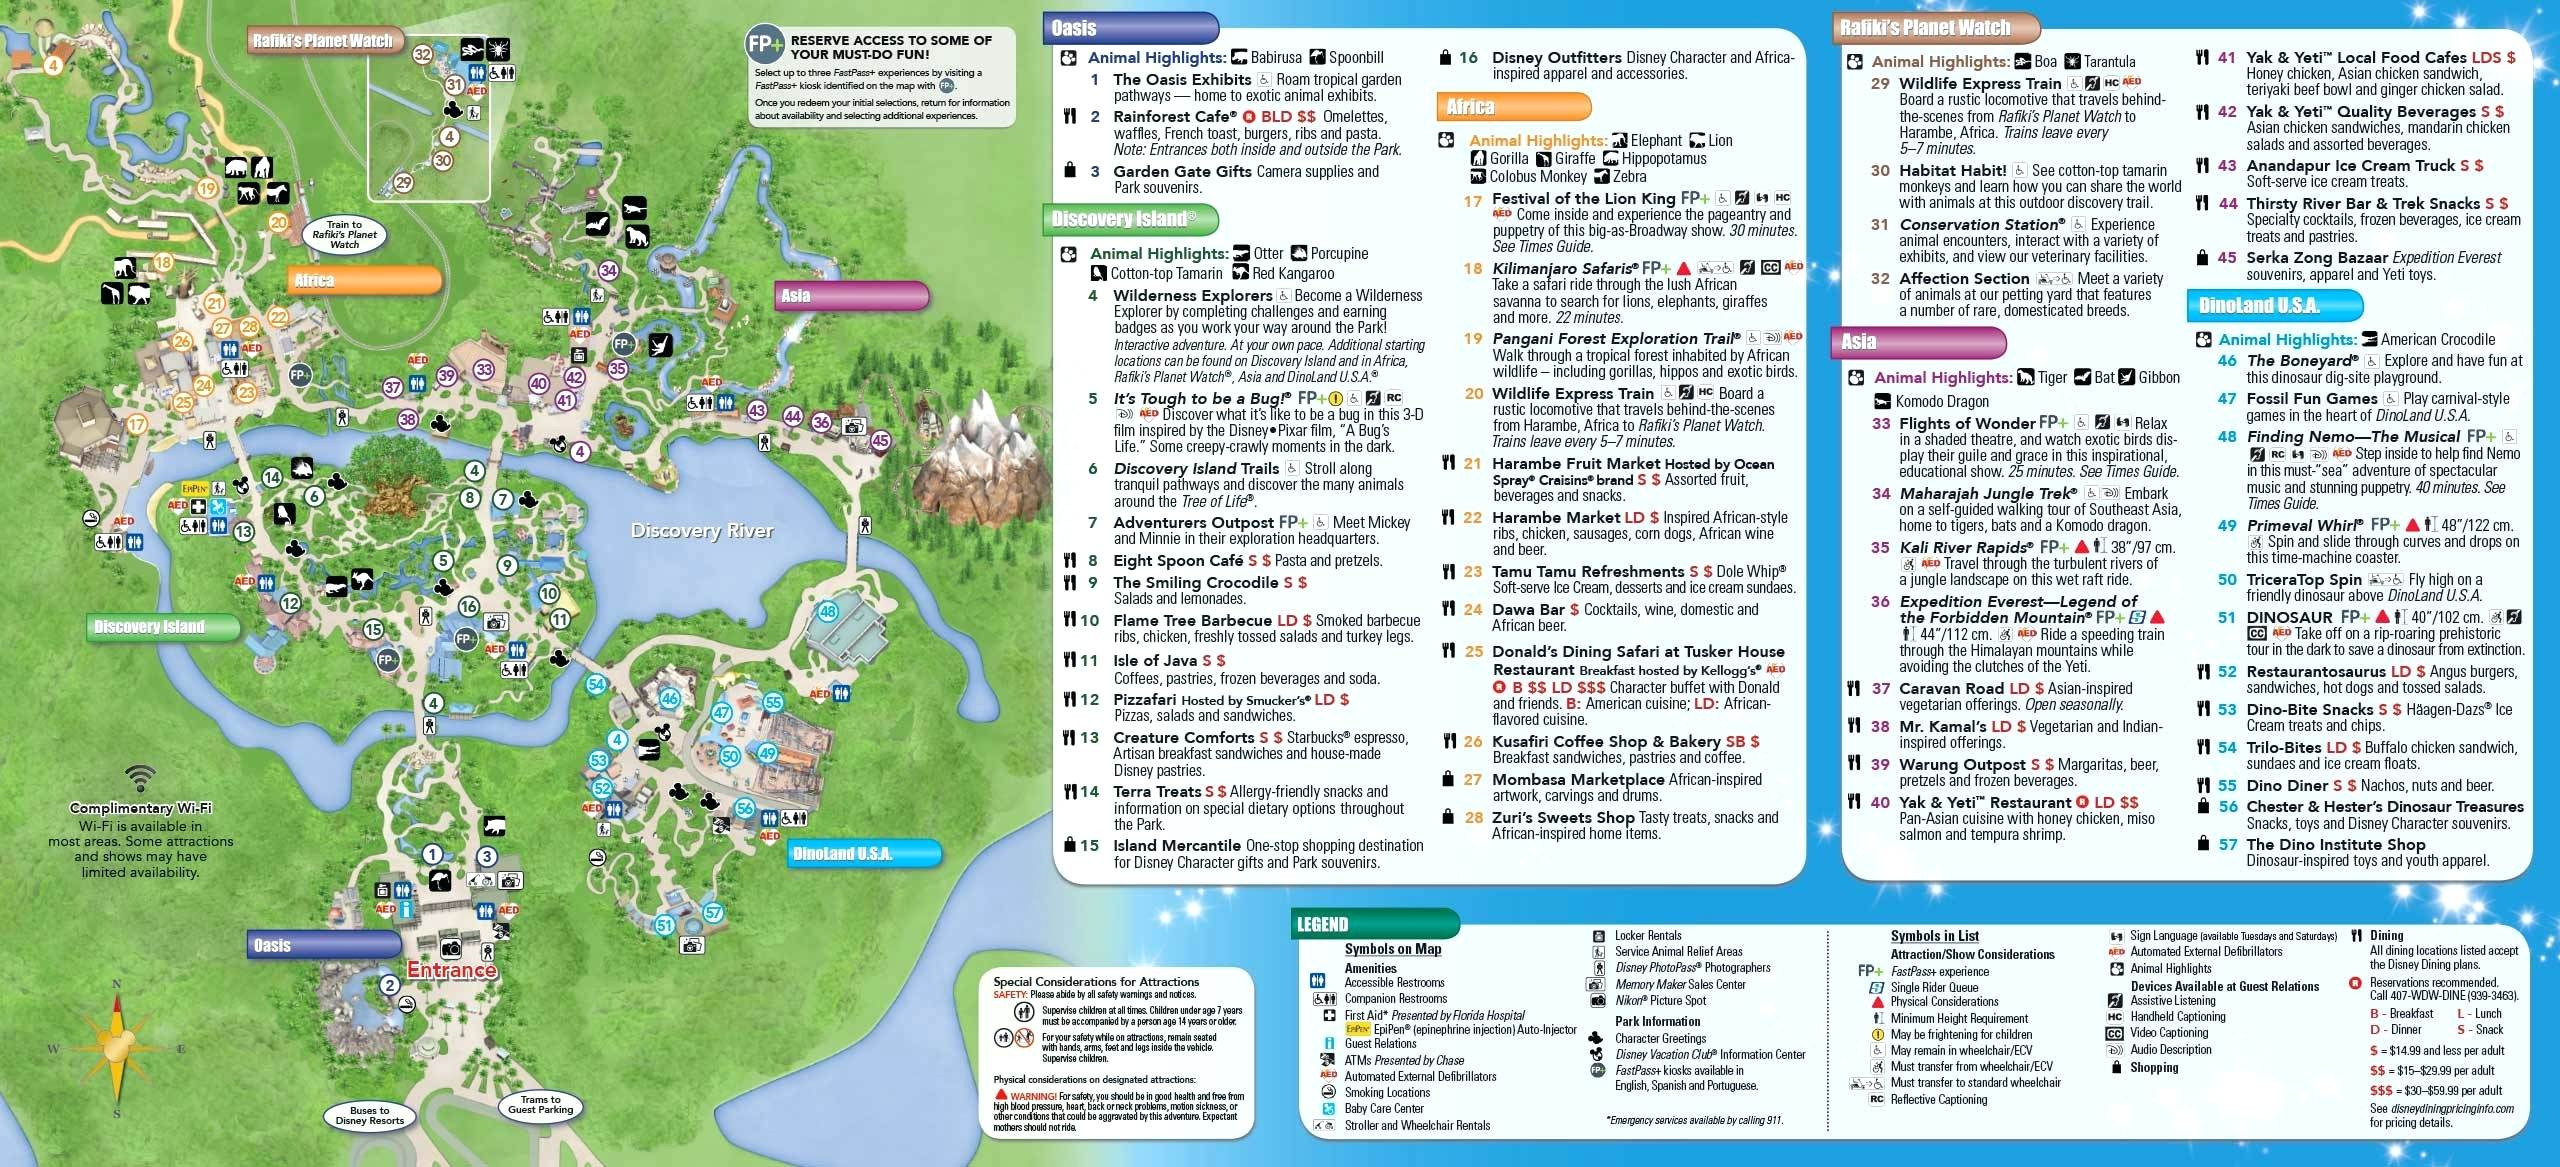 Printable Disneyland Map 2018 Inspirational Printable Map Disney World Me Best Maps